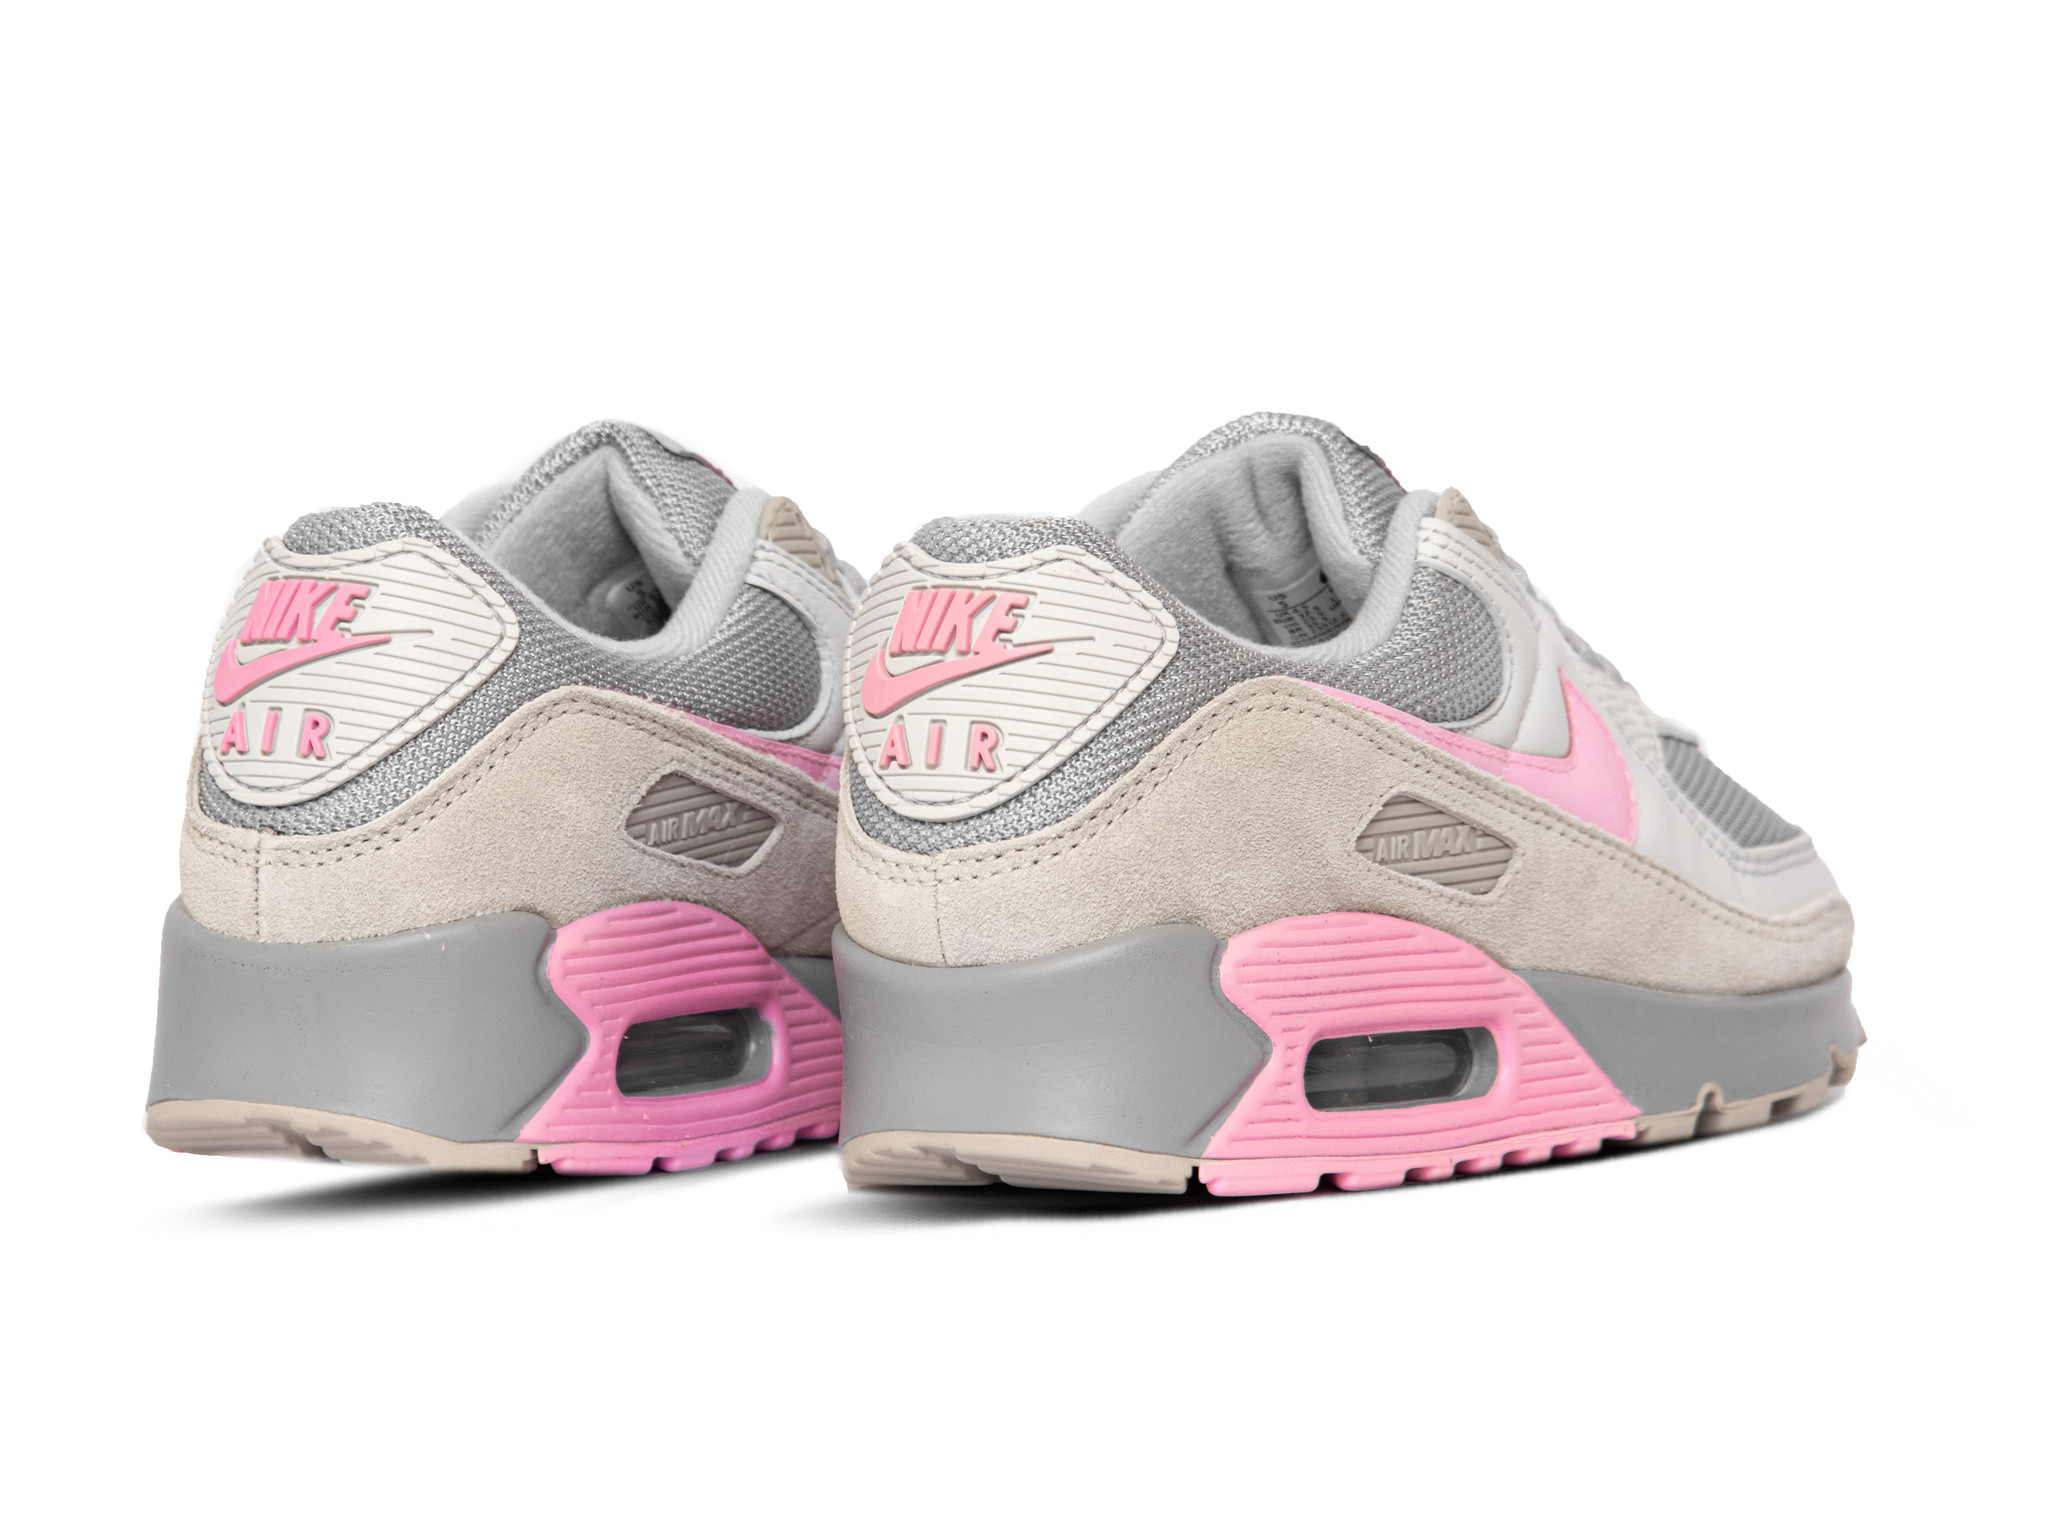 Altoparlante Escalofriante Vandalir  Air Max 90 Vast Grey Pink Wolf Grey String CW7483 001 - Bruut Sneakers &  Clothing Store